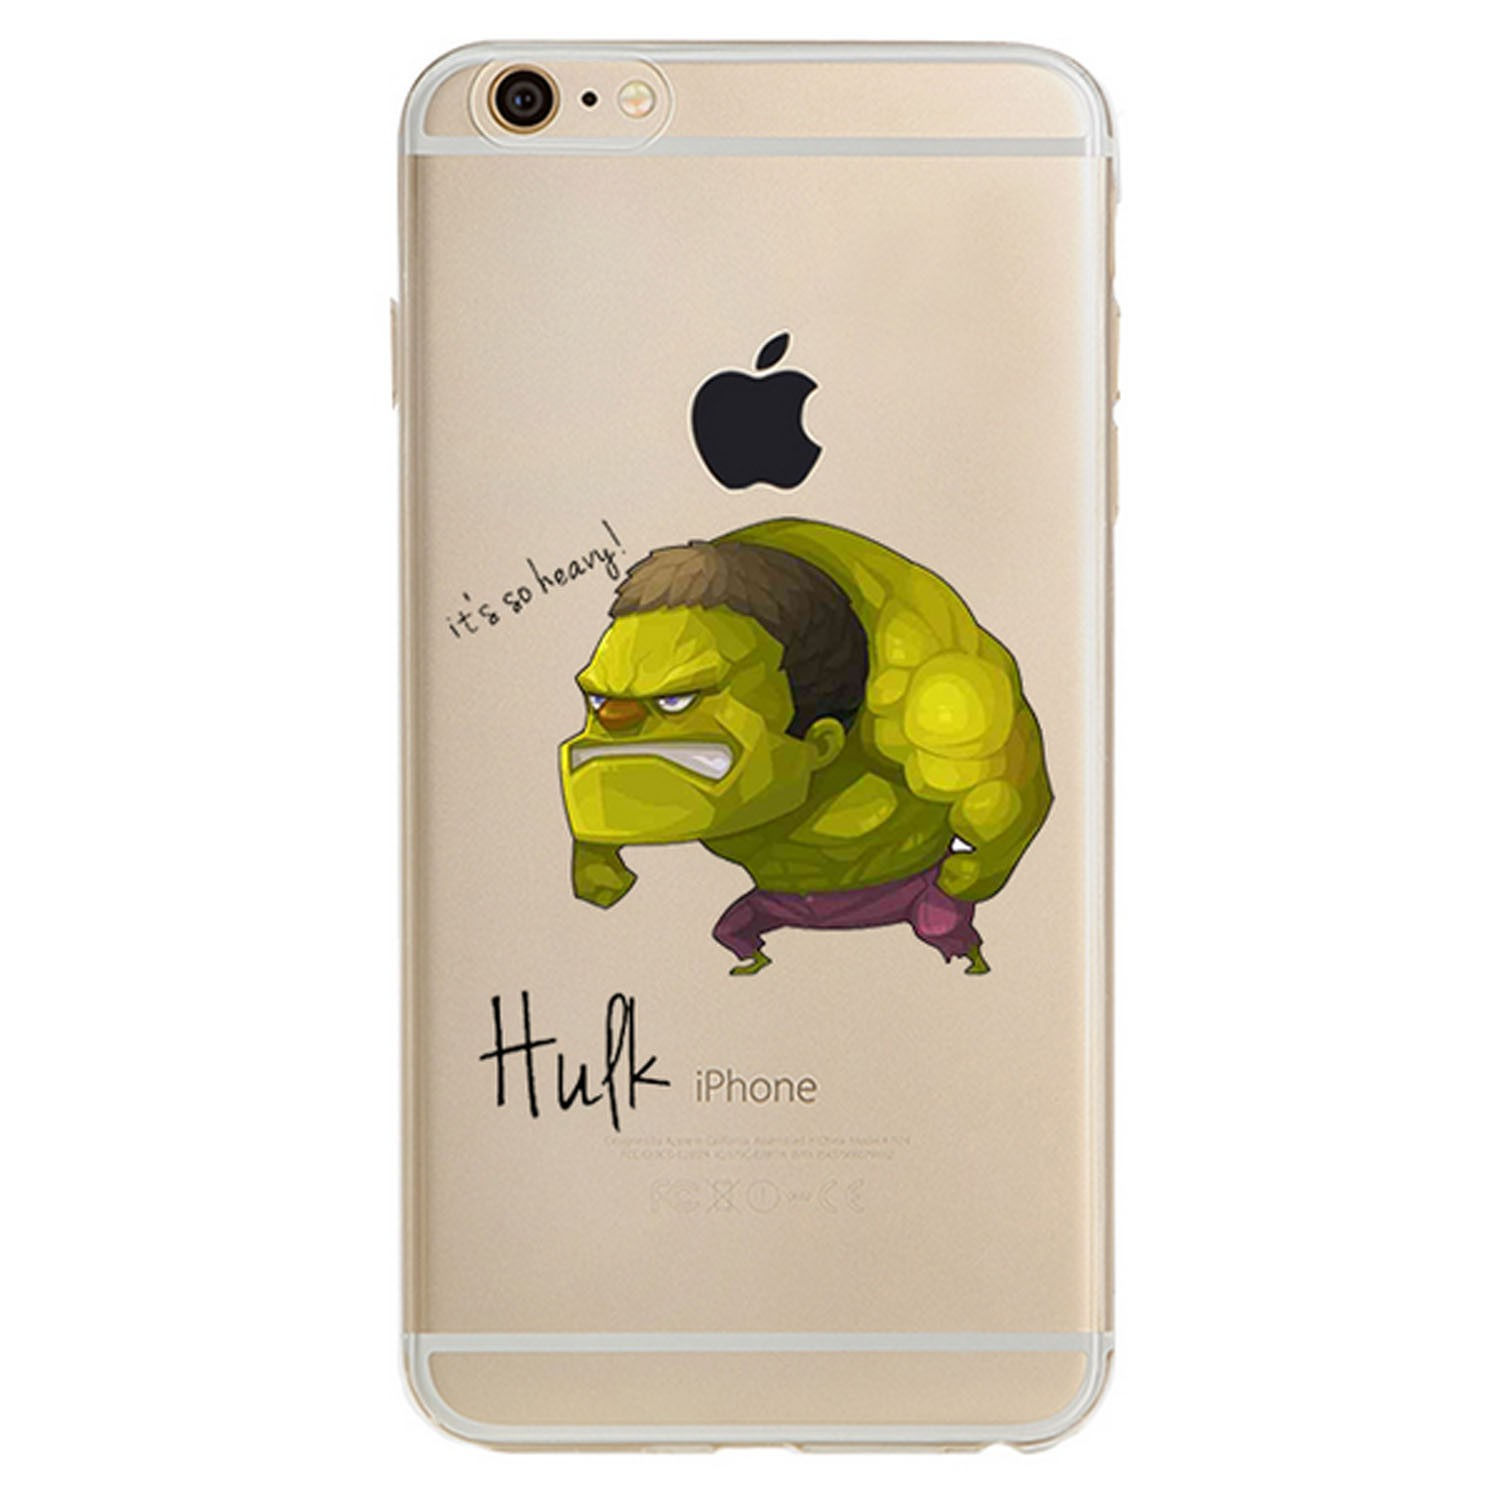 Kritzel Case iPhone 6 plus / 6s plus - Hulk